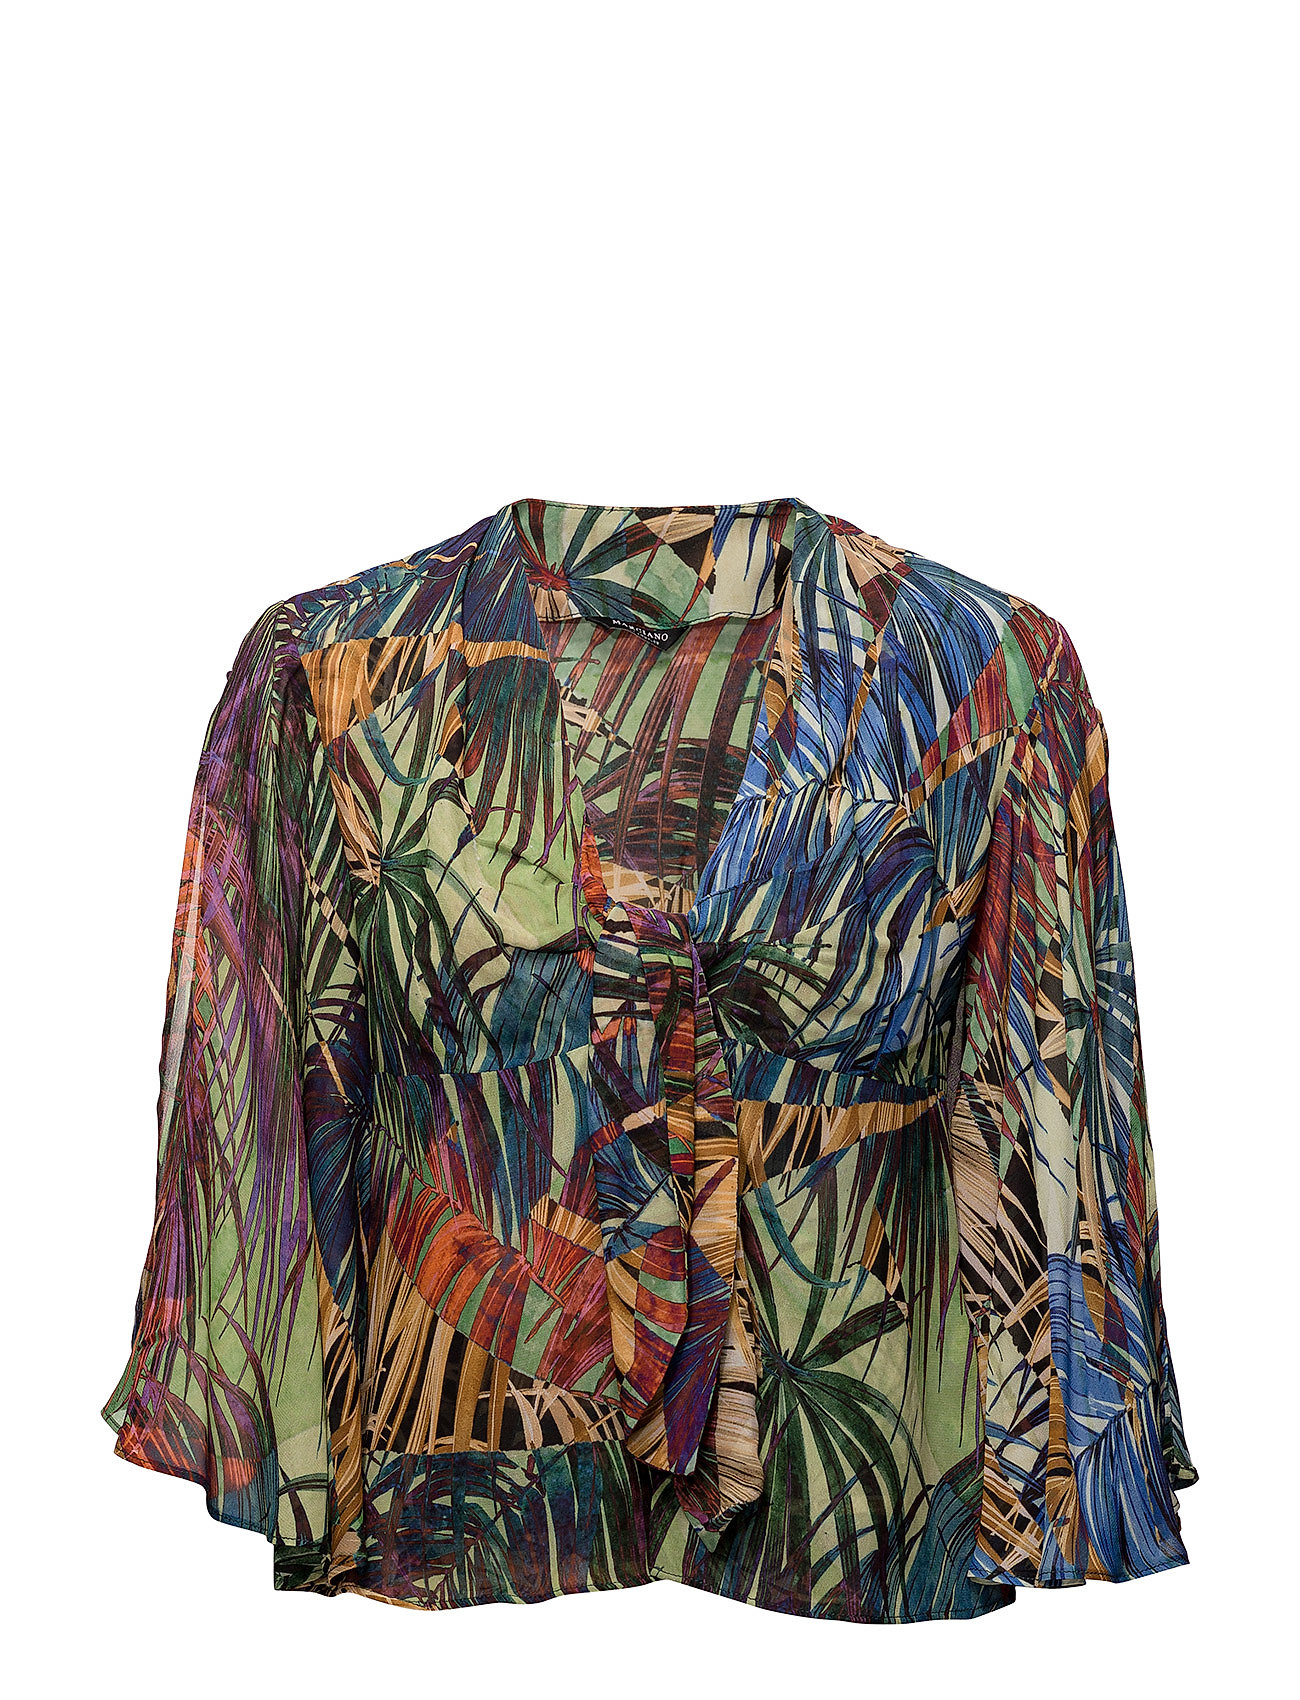 ca6a4e204720 Not Top (Summer Tropical) (89.40 €) - Marciano by GUESS - | Boozt.com